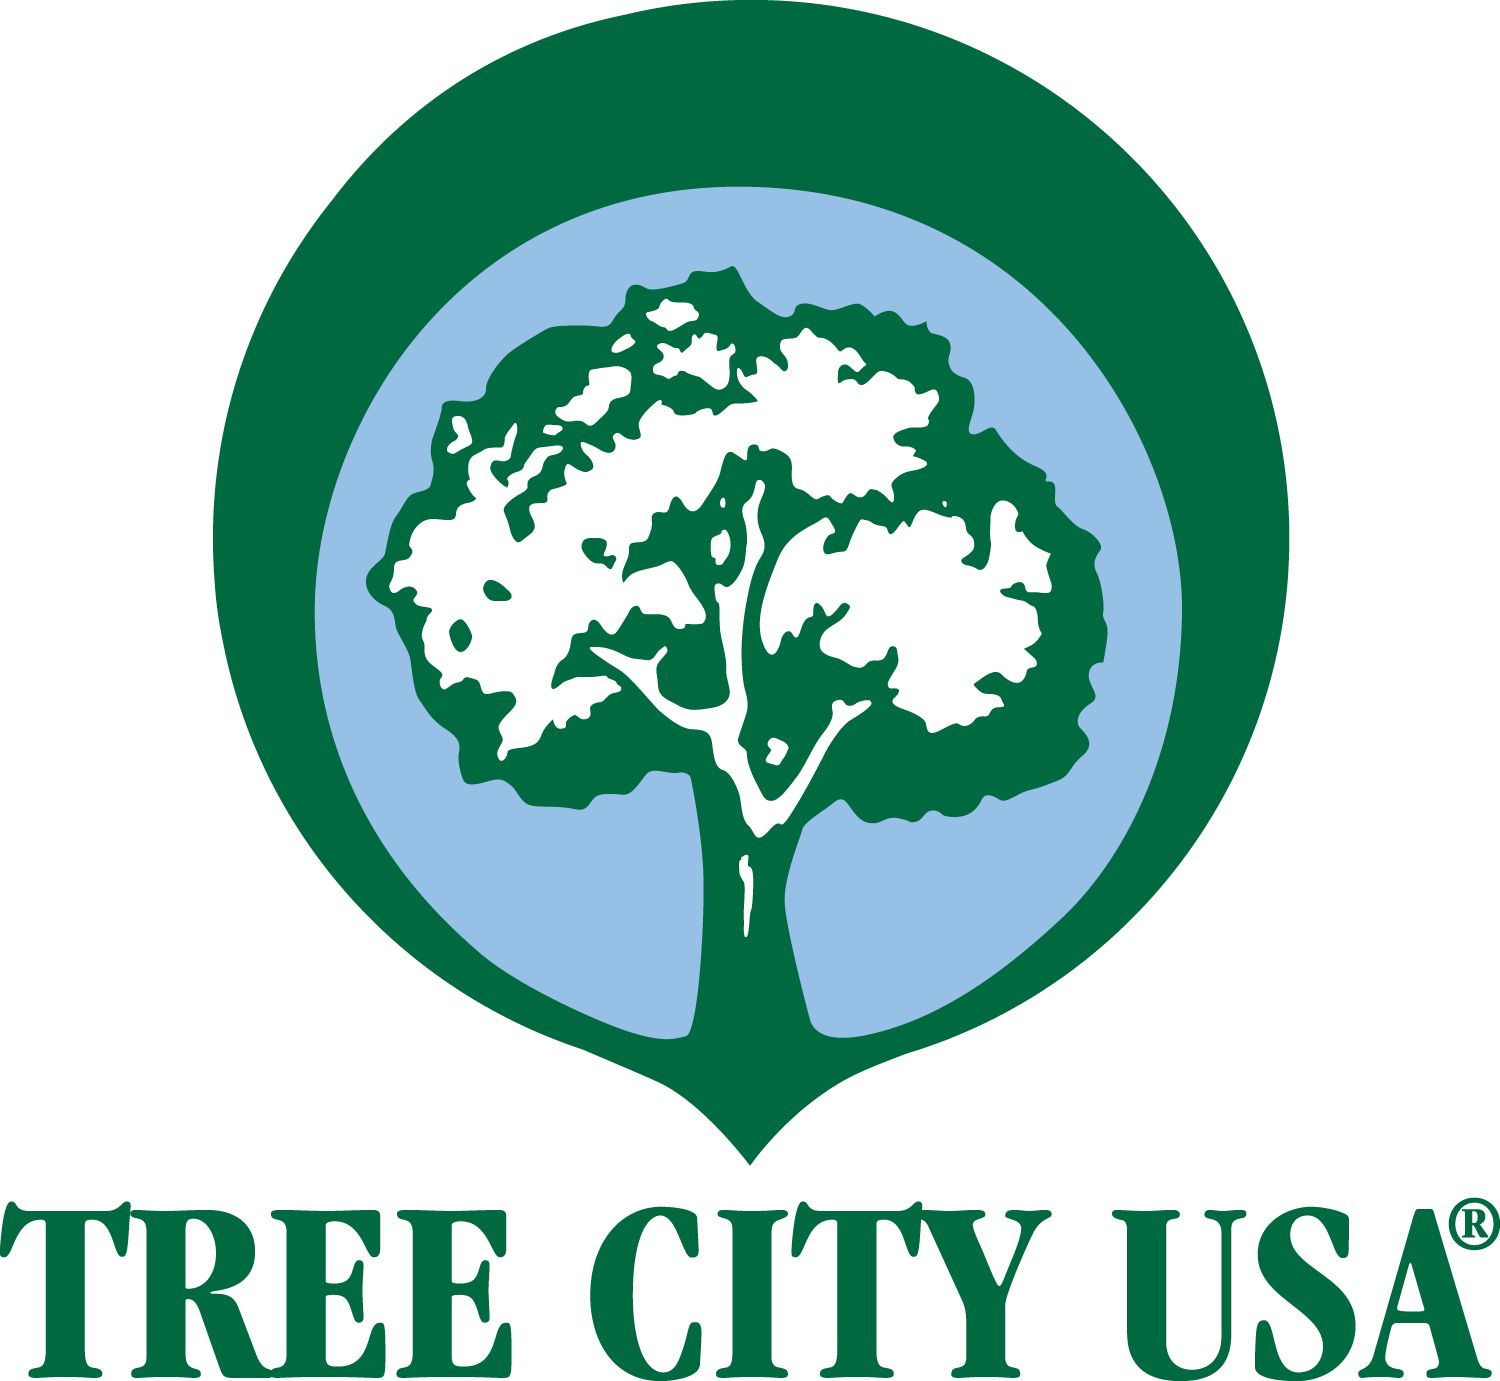 miami-lakes-designated-tree-city-usa-for-8th-year-in-a-row